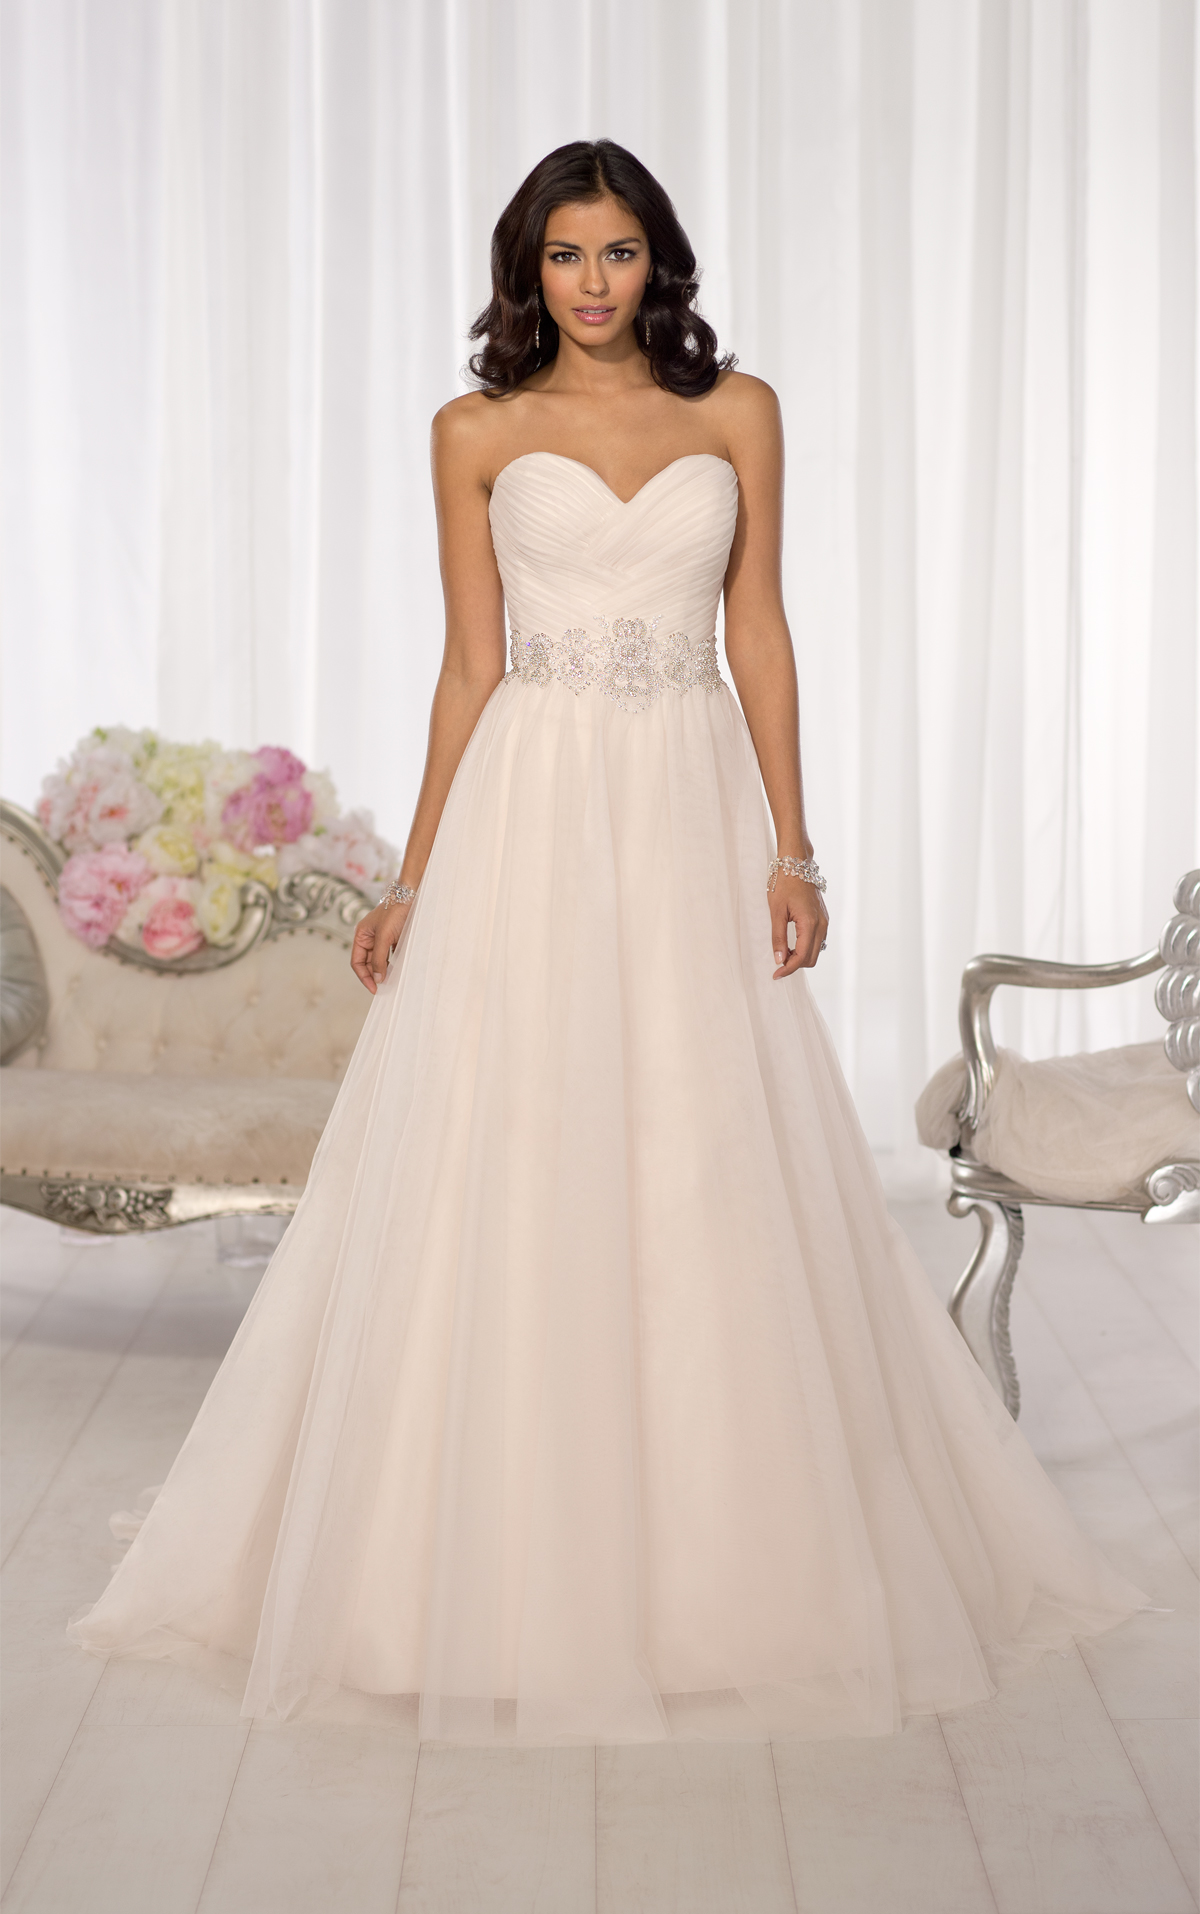 Essense of australia wedding dresses 2014 collection for Essence australia wedding dresses